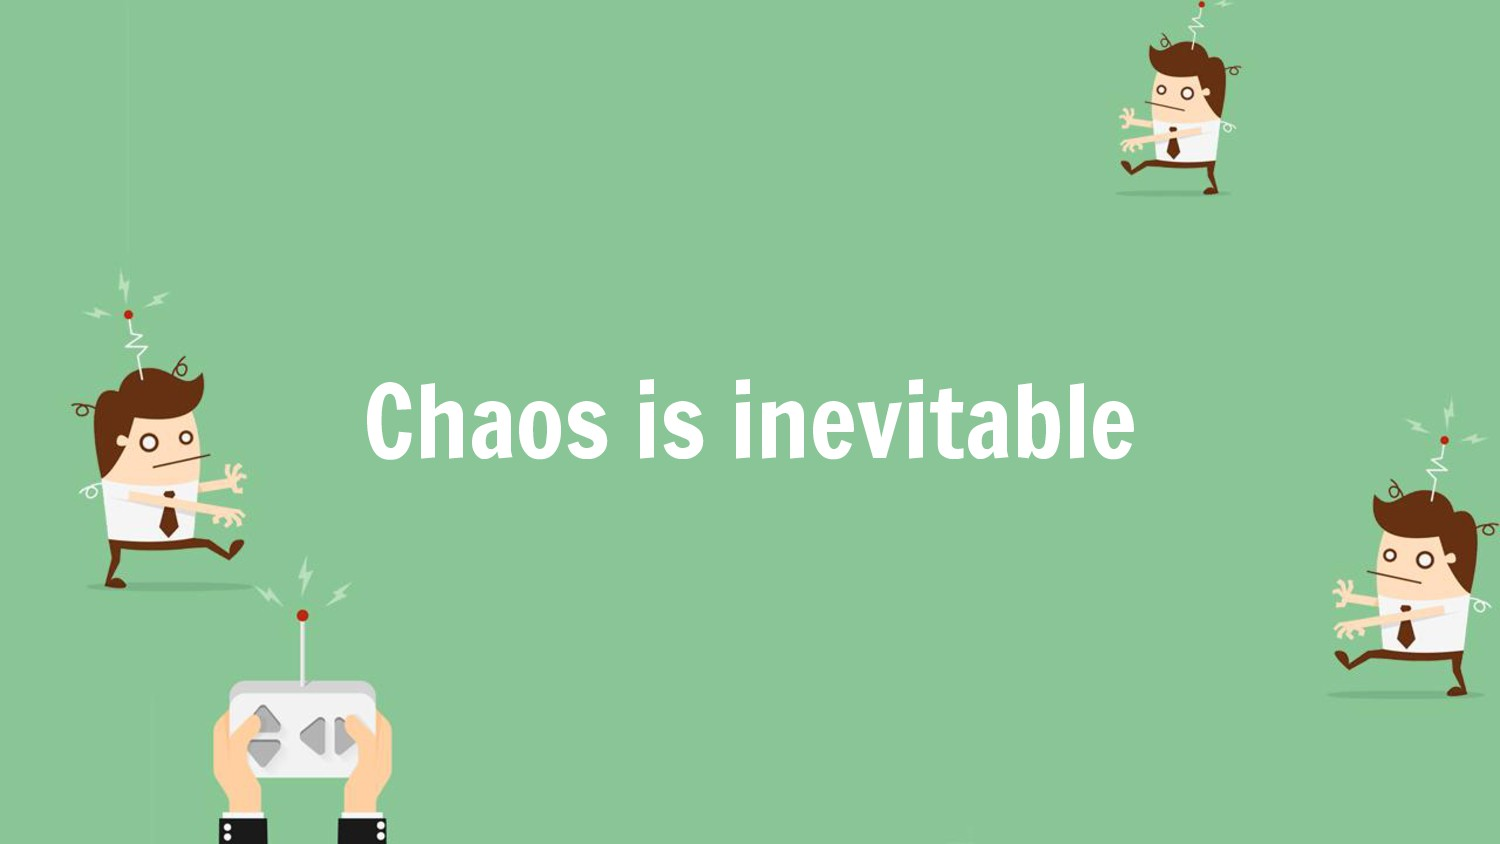 Chaos is inevitable